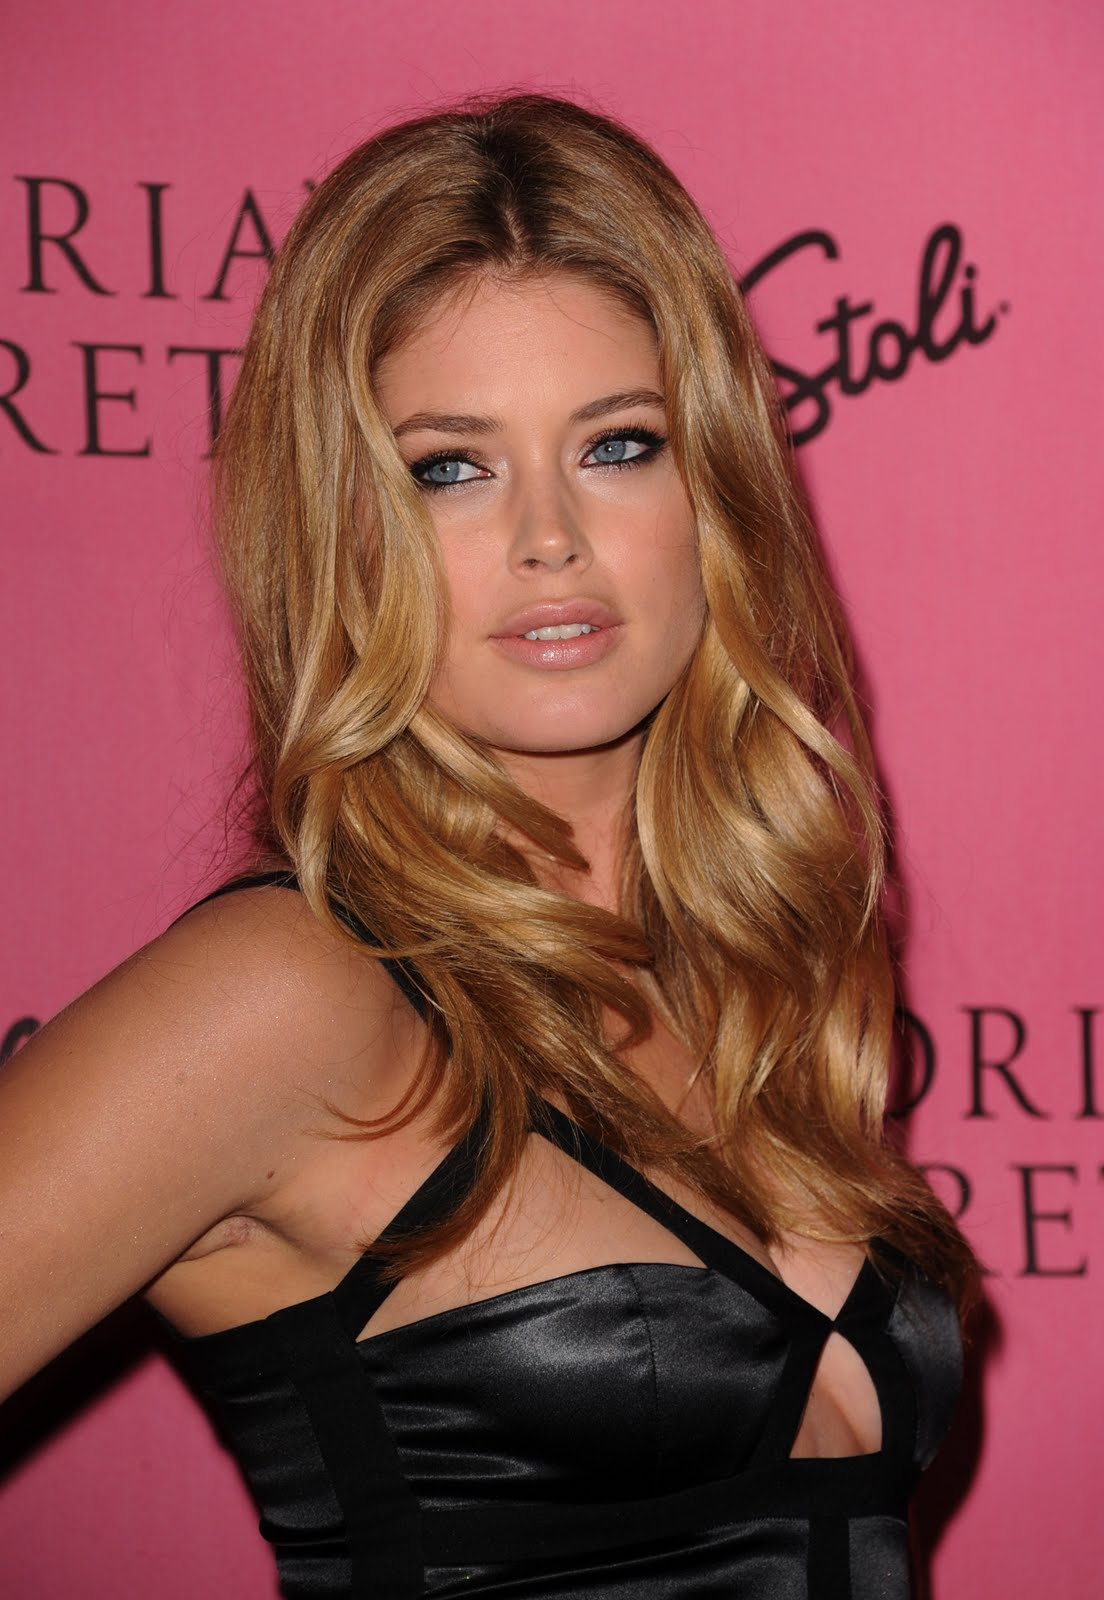 http://1.bp.blogspot.com/-mArKJ5SFOIw/S-zY5TVMAxI/AAAAAAAAHuo/Do1lCz7BX90/s1600/Doutzen+Kroes+%25E2%2580%2593+Victoria%25E2%2580%2599s+Secret+5th+Annual+%25E2%2580%259CWhat+is+Sexy%253F%25E2%2580%259D+Event3.jpg